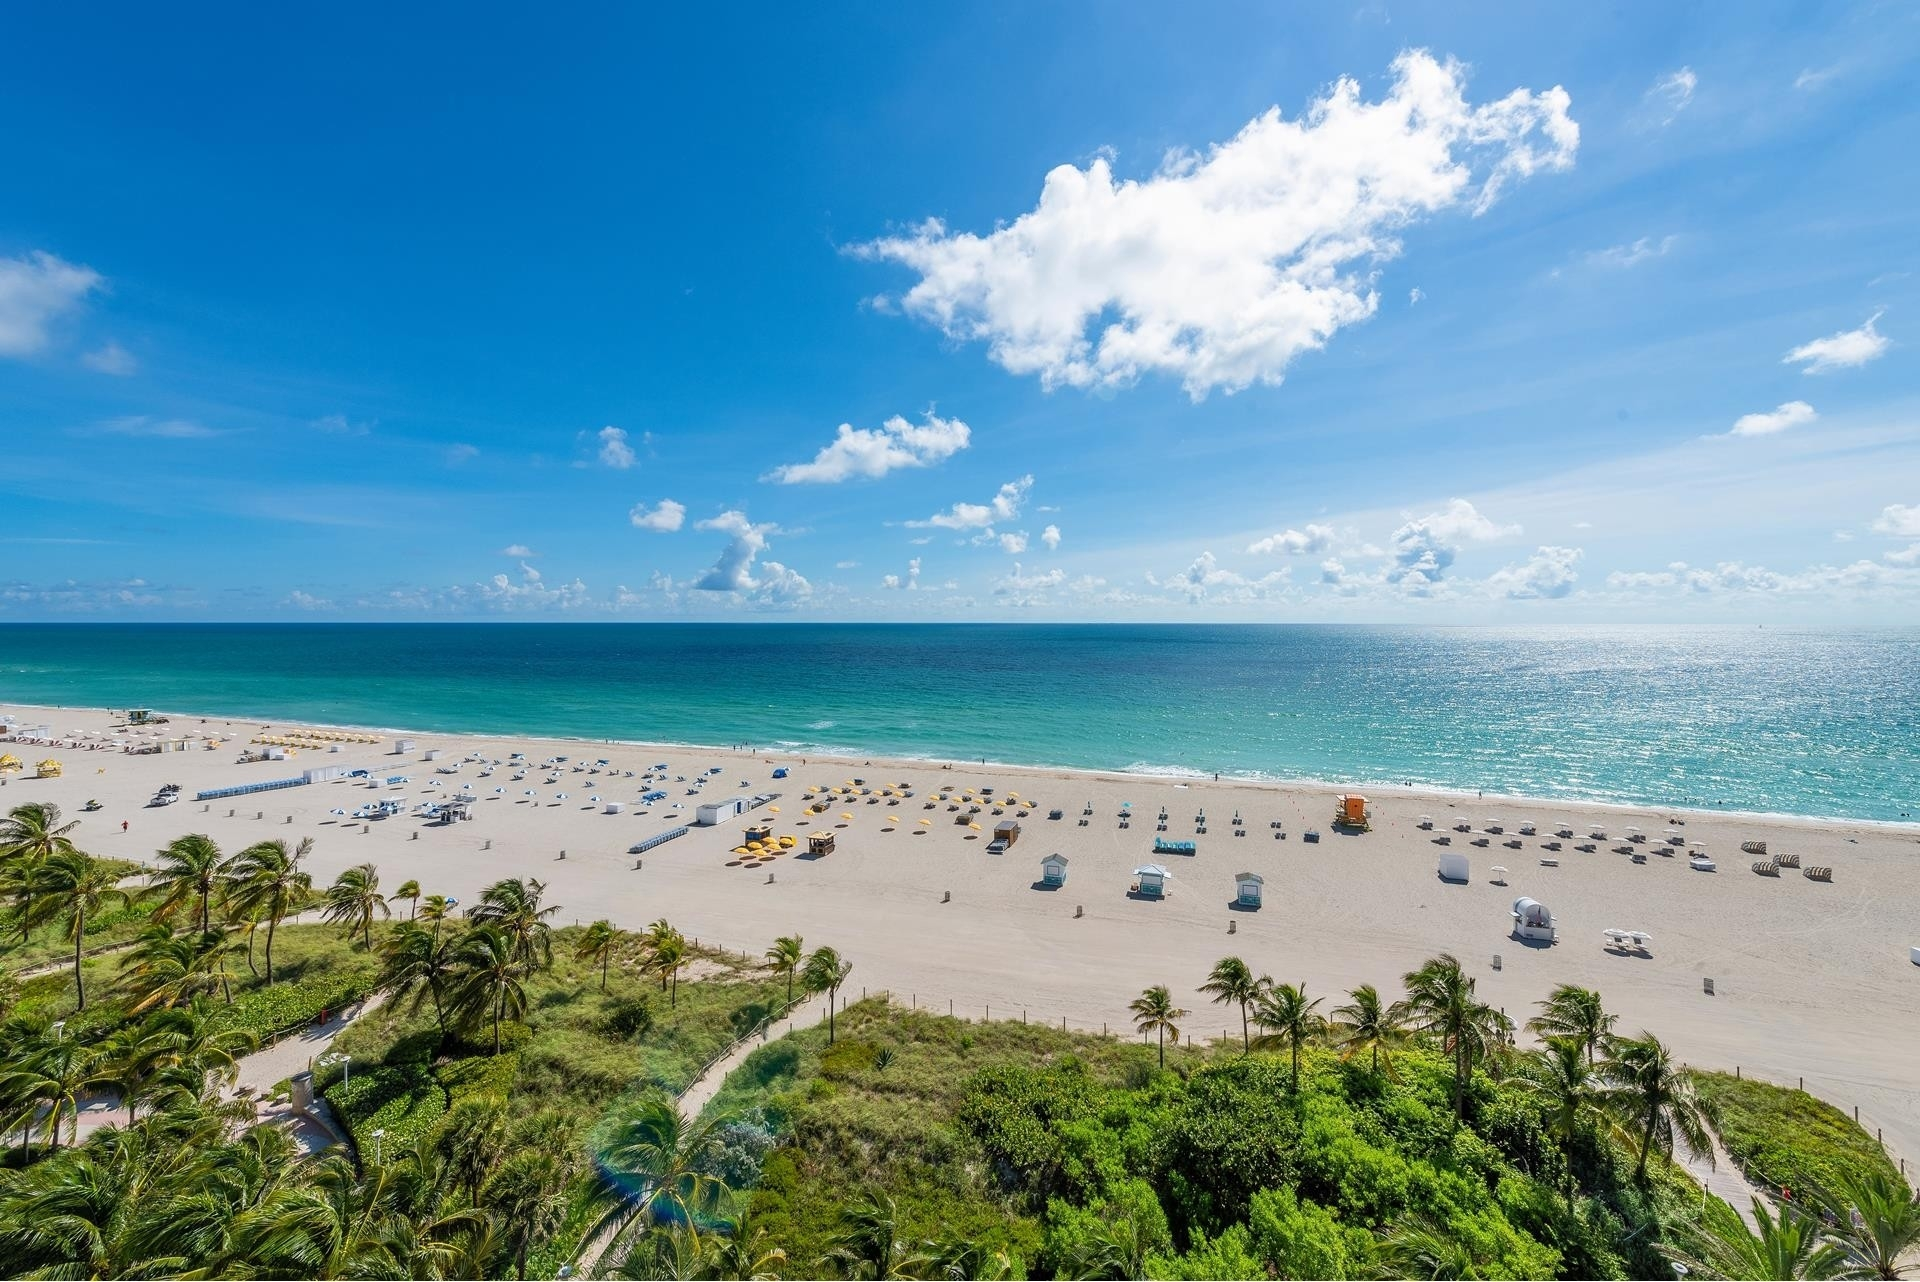 3. Condominiums for Sale at 1500 Ocean Dr , 1101 Miami Beach City Center, Miami Beach, FL 33139